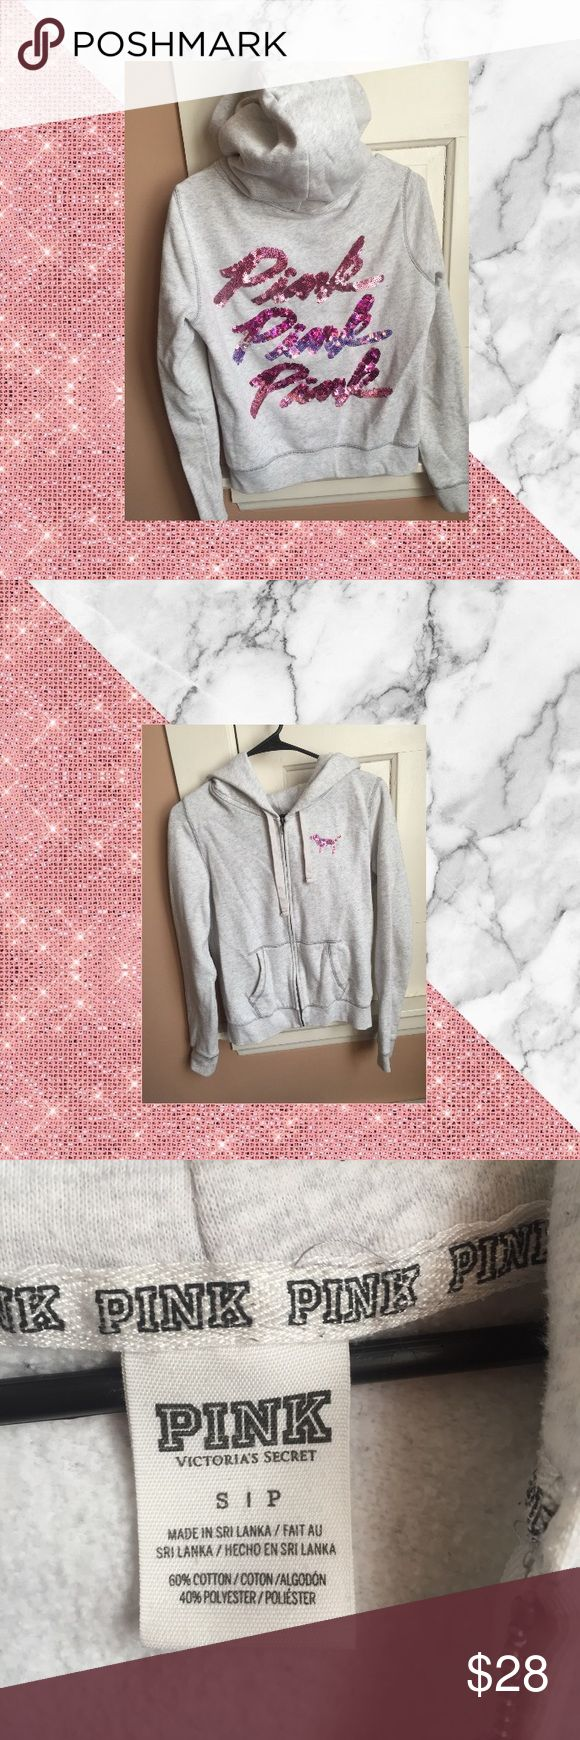 VS Bling Zip-up Hoodie Pre loved VS PINK Zip-up hoodie. Size: Small Light grey zip up hoodie with pink/iridescent sequin on front and back. Two patches of bleach spots on hood but can barely see them. PINK Victoria's Secret Tops Sweatshirts & Hoodies